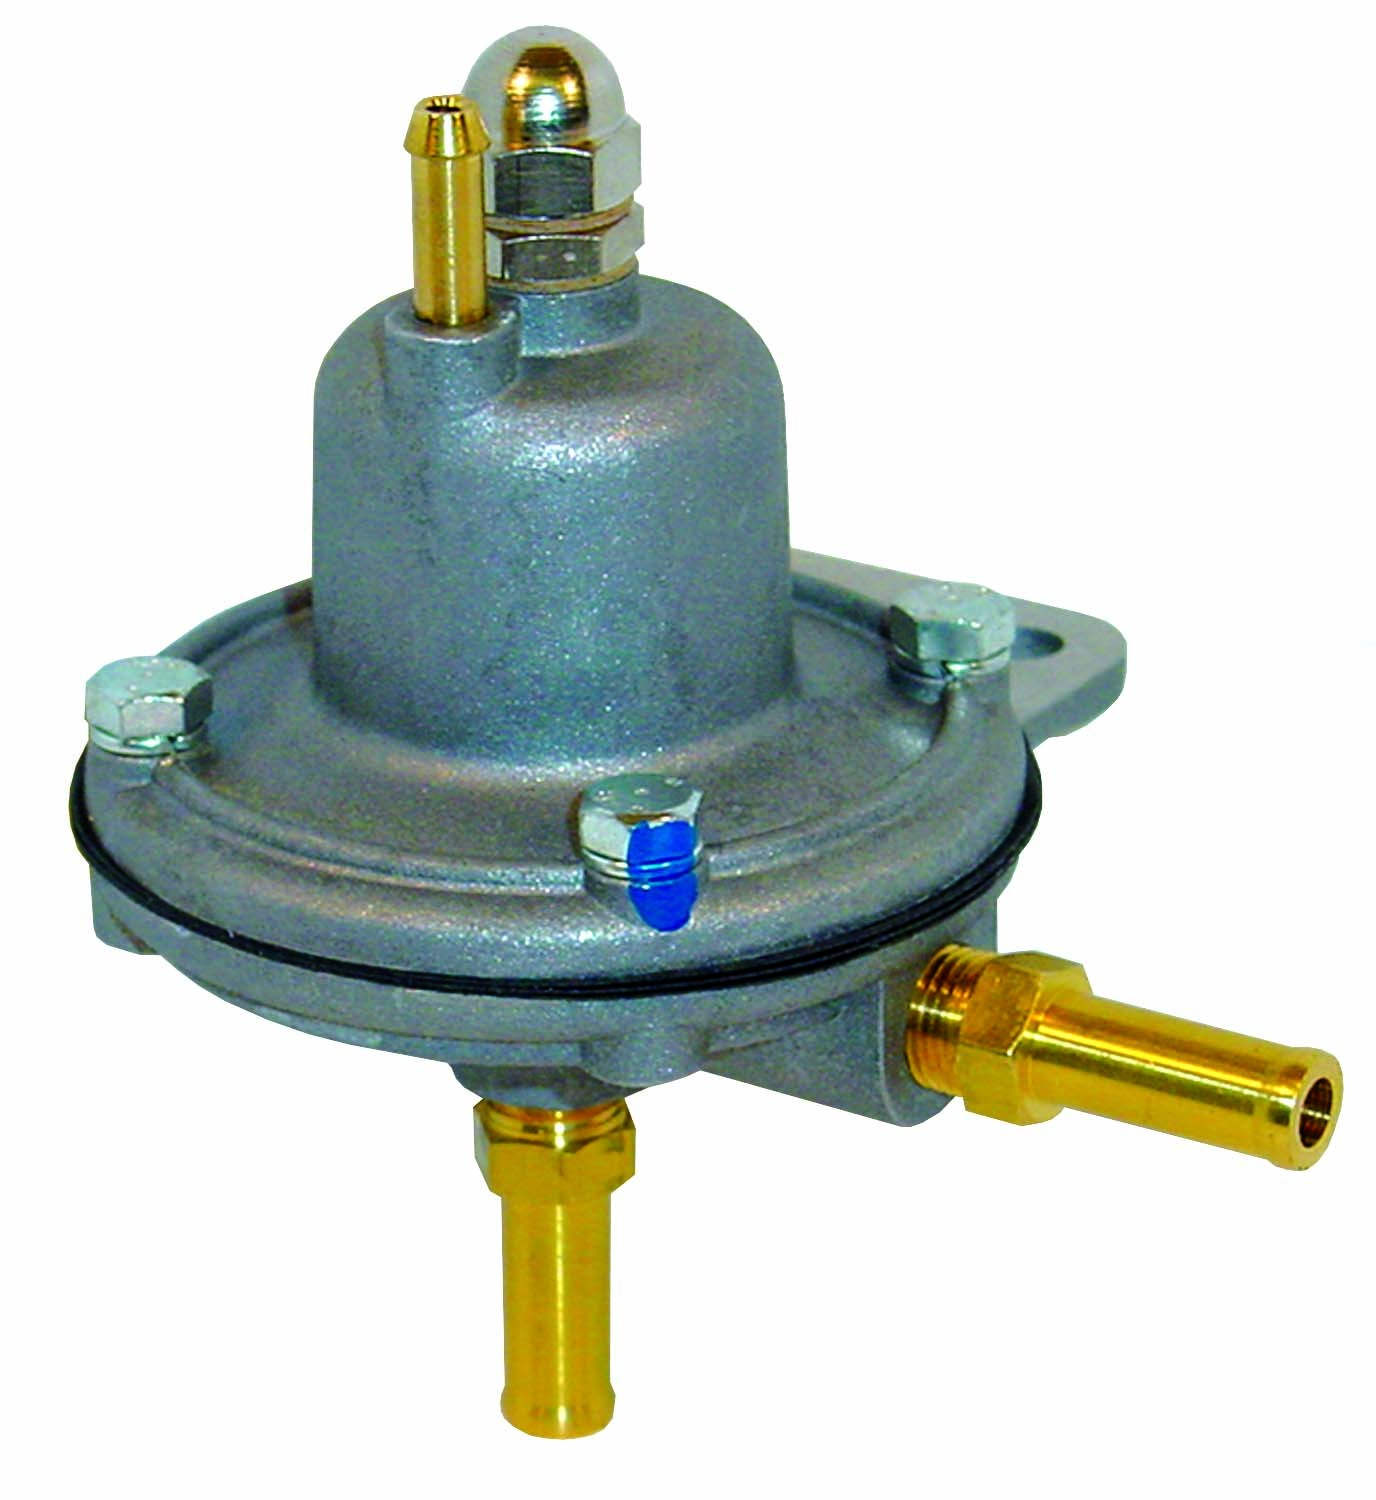 Malpassi 1:1 Fuel Pressure Regulators